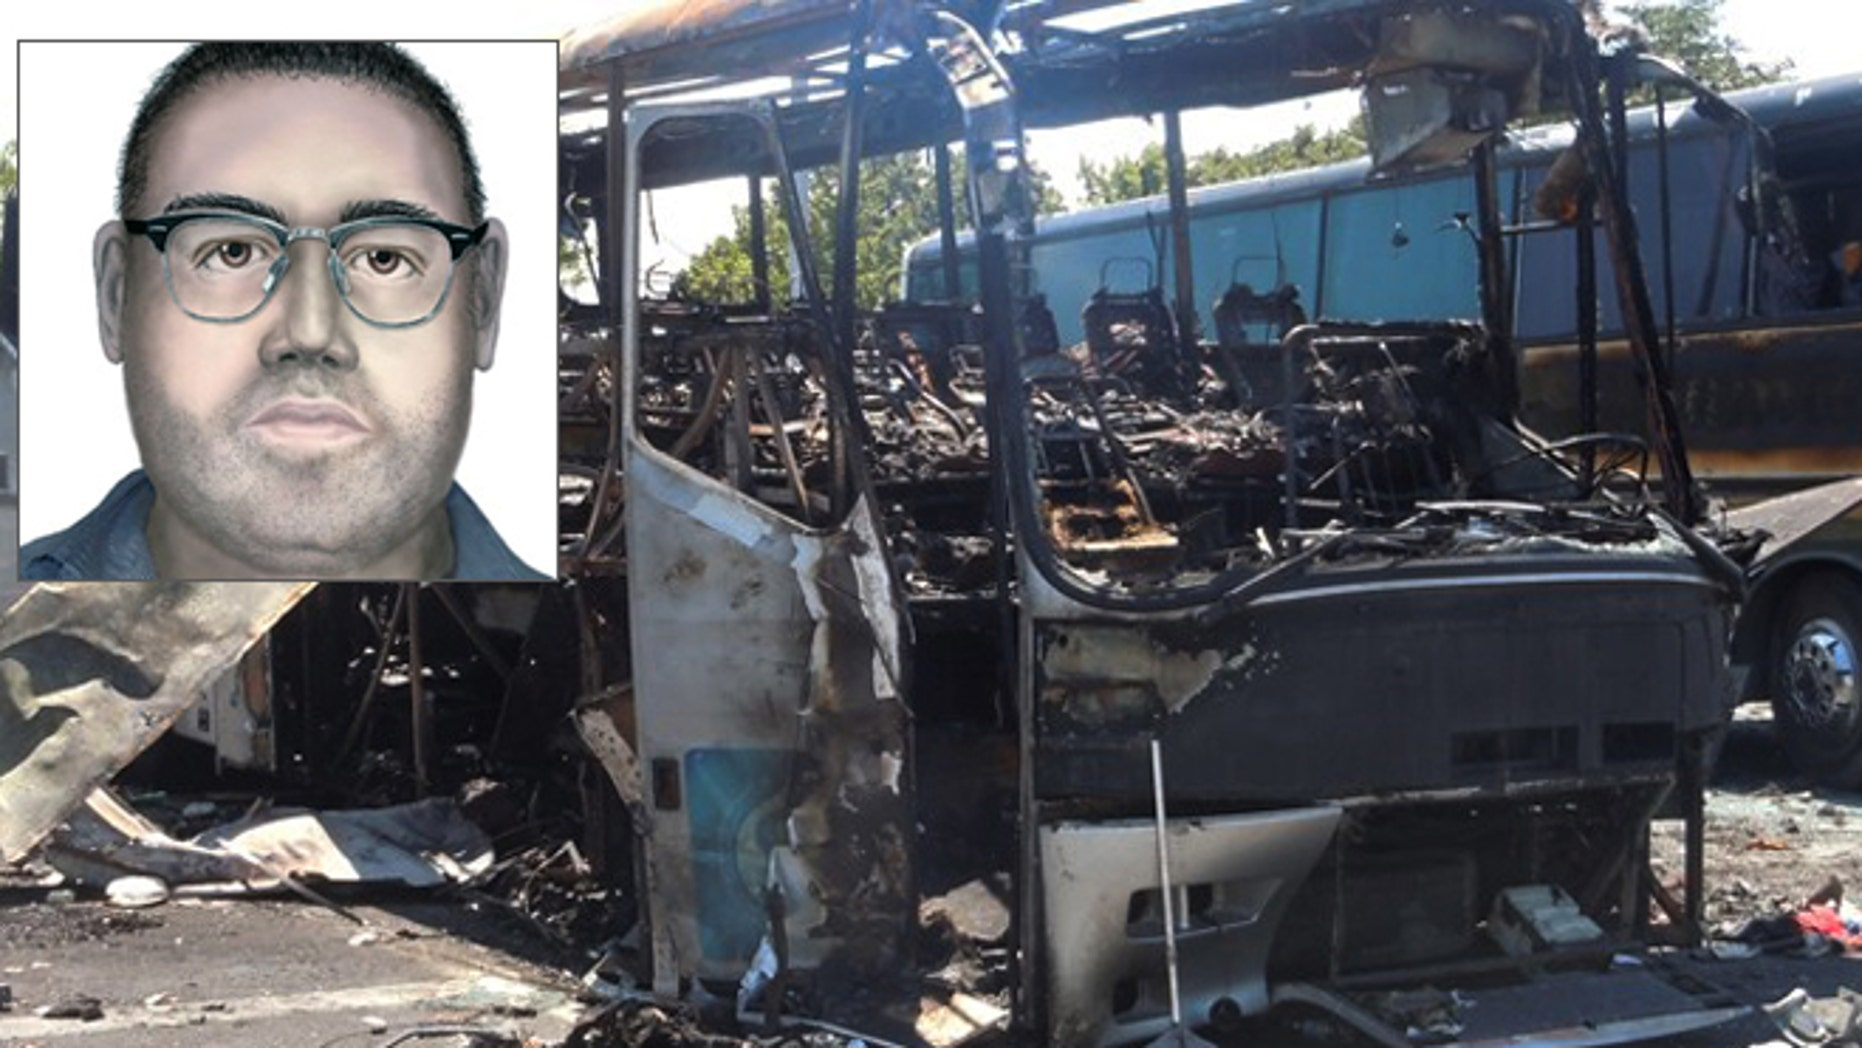 A computer-generated image of a man suspected of involvement in the bombing that killed five Israeli tourists and a Bulgarian bus driver a month ago in Burgas